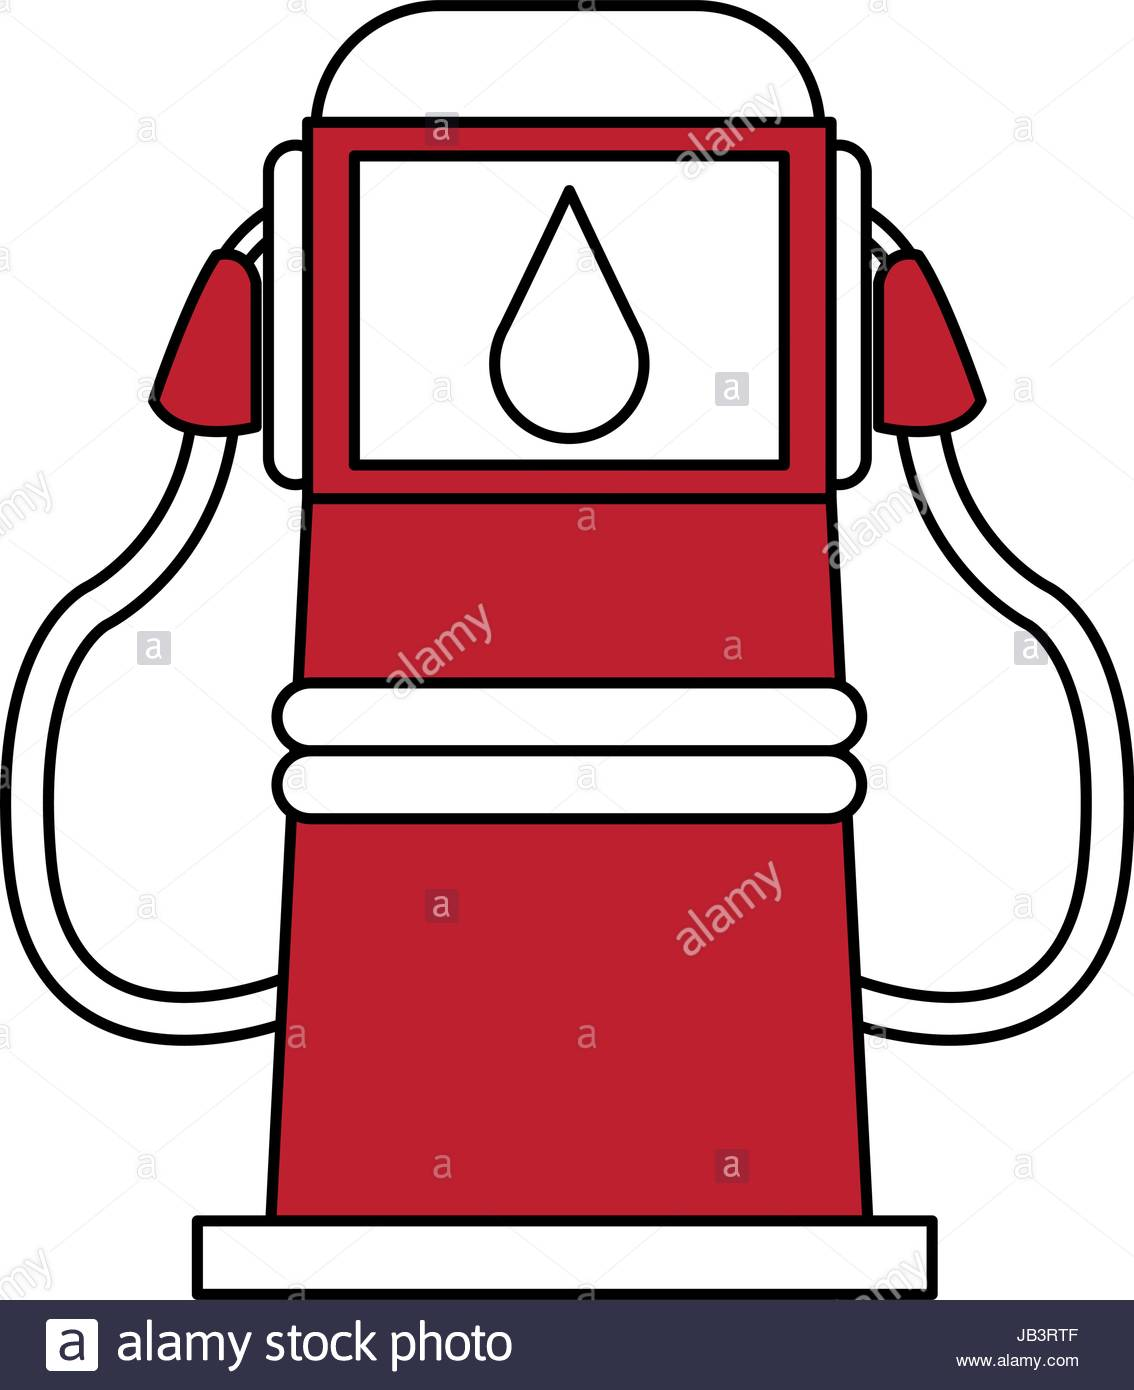 1134x1390 Gas Station Cartoon Icon Stock Vector Art Amp Illustration, Vector